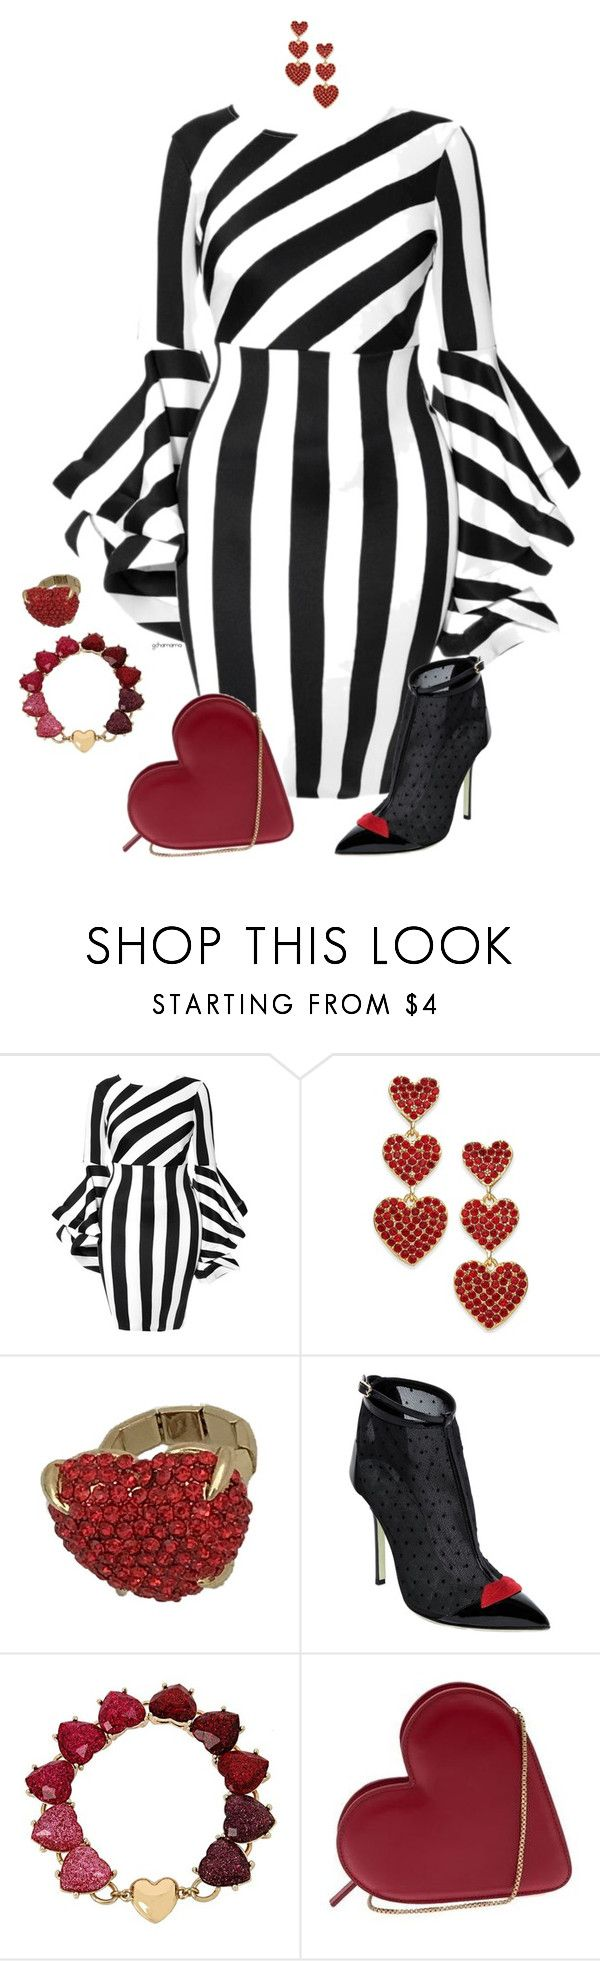 """Fool for love- plus size"" by gchamama ❤ liked on Polyvore featuring Kate Spade, Giannico, Betsey Johnson and Lulu Guinness"